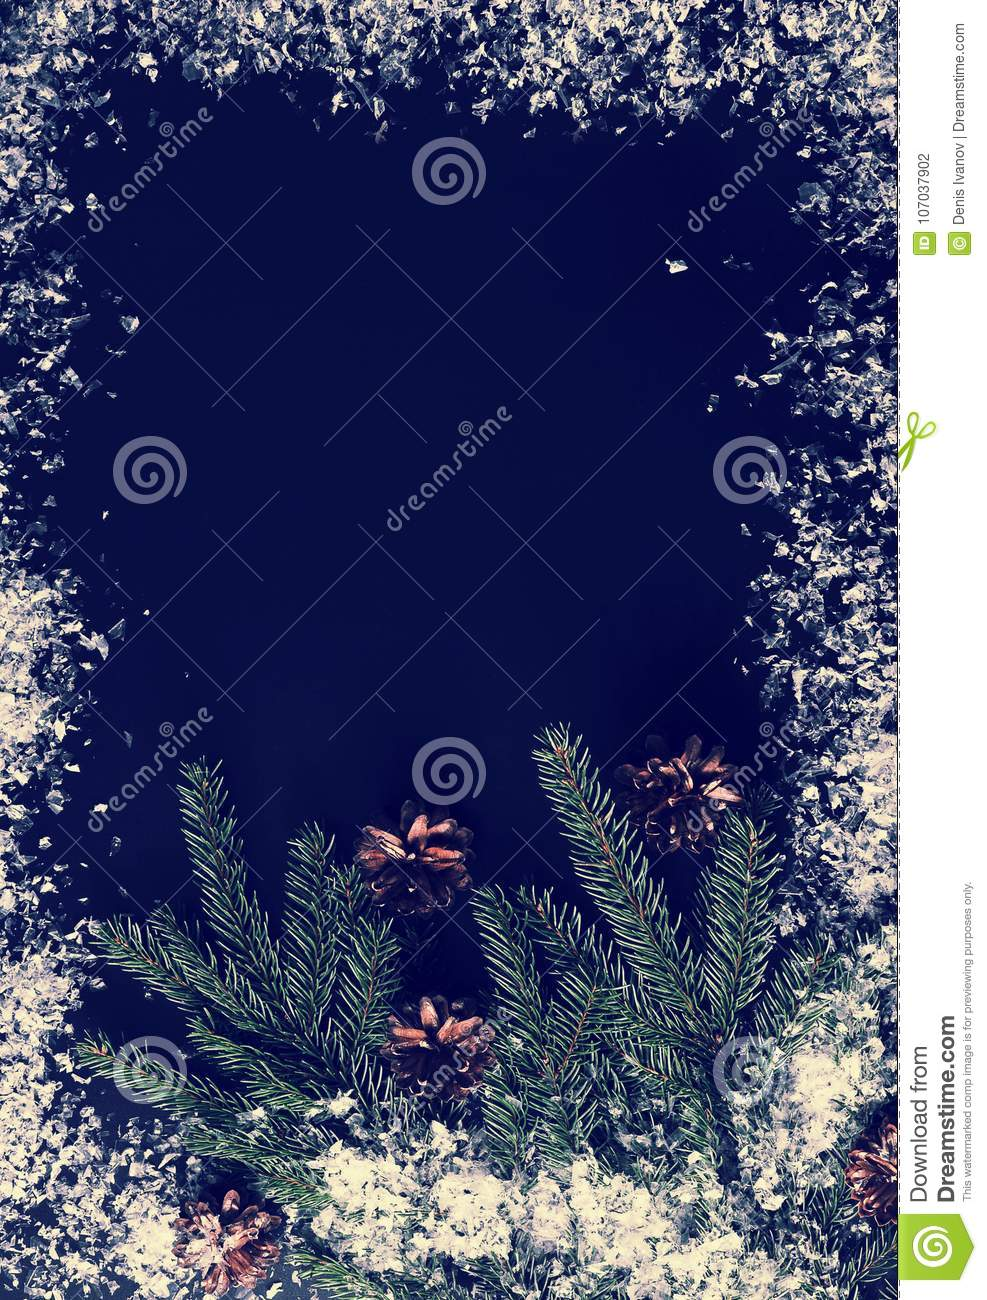 Background For New Year Greetings Tree Branches Cones And Sno